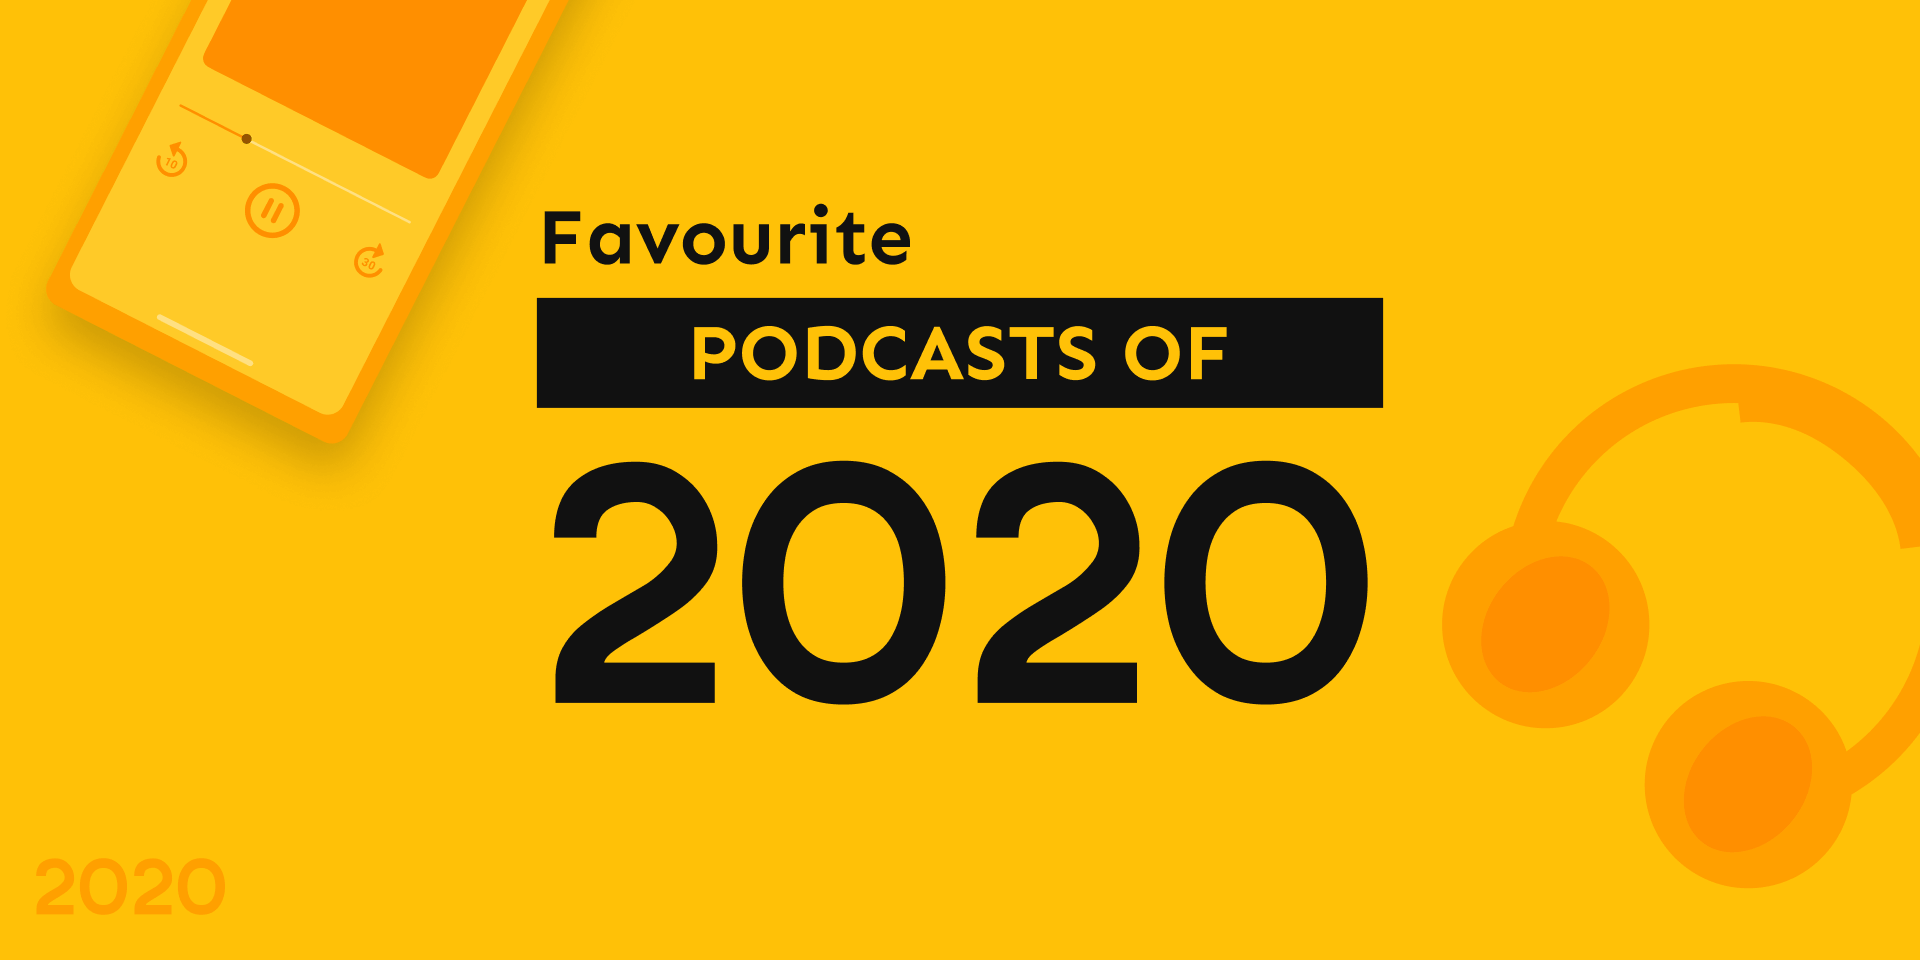 Favourite Podcasts of 2020